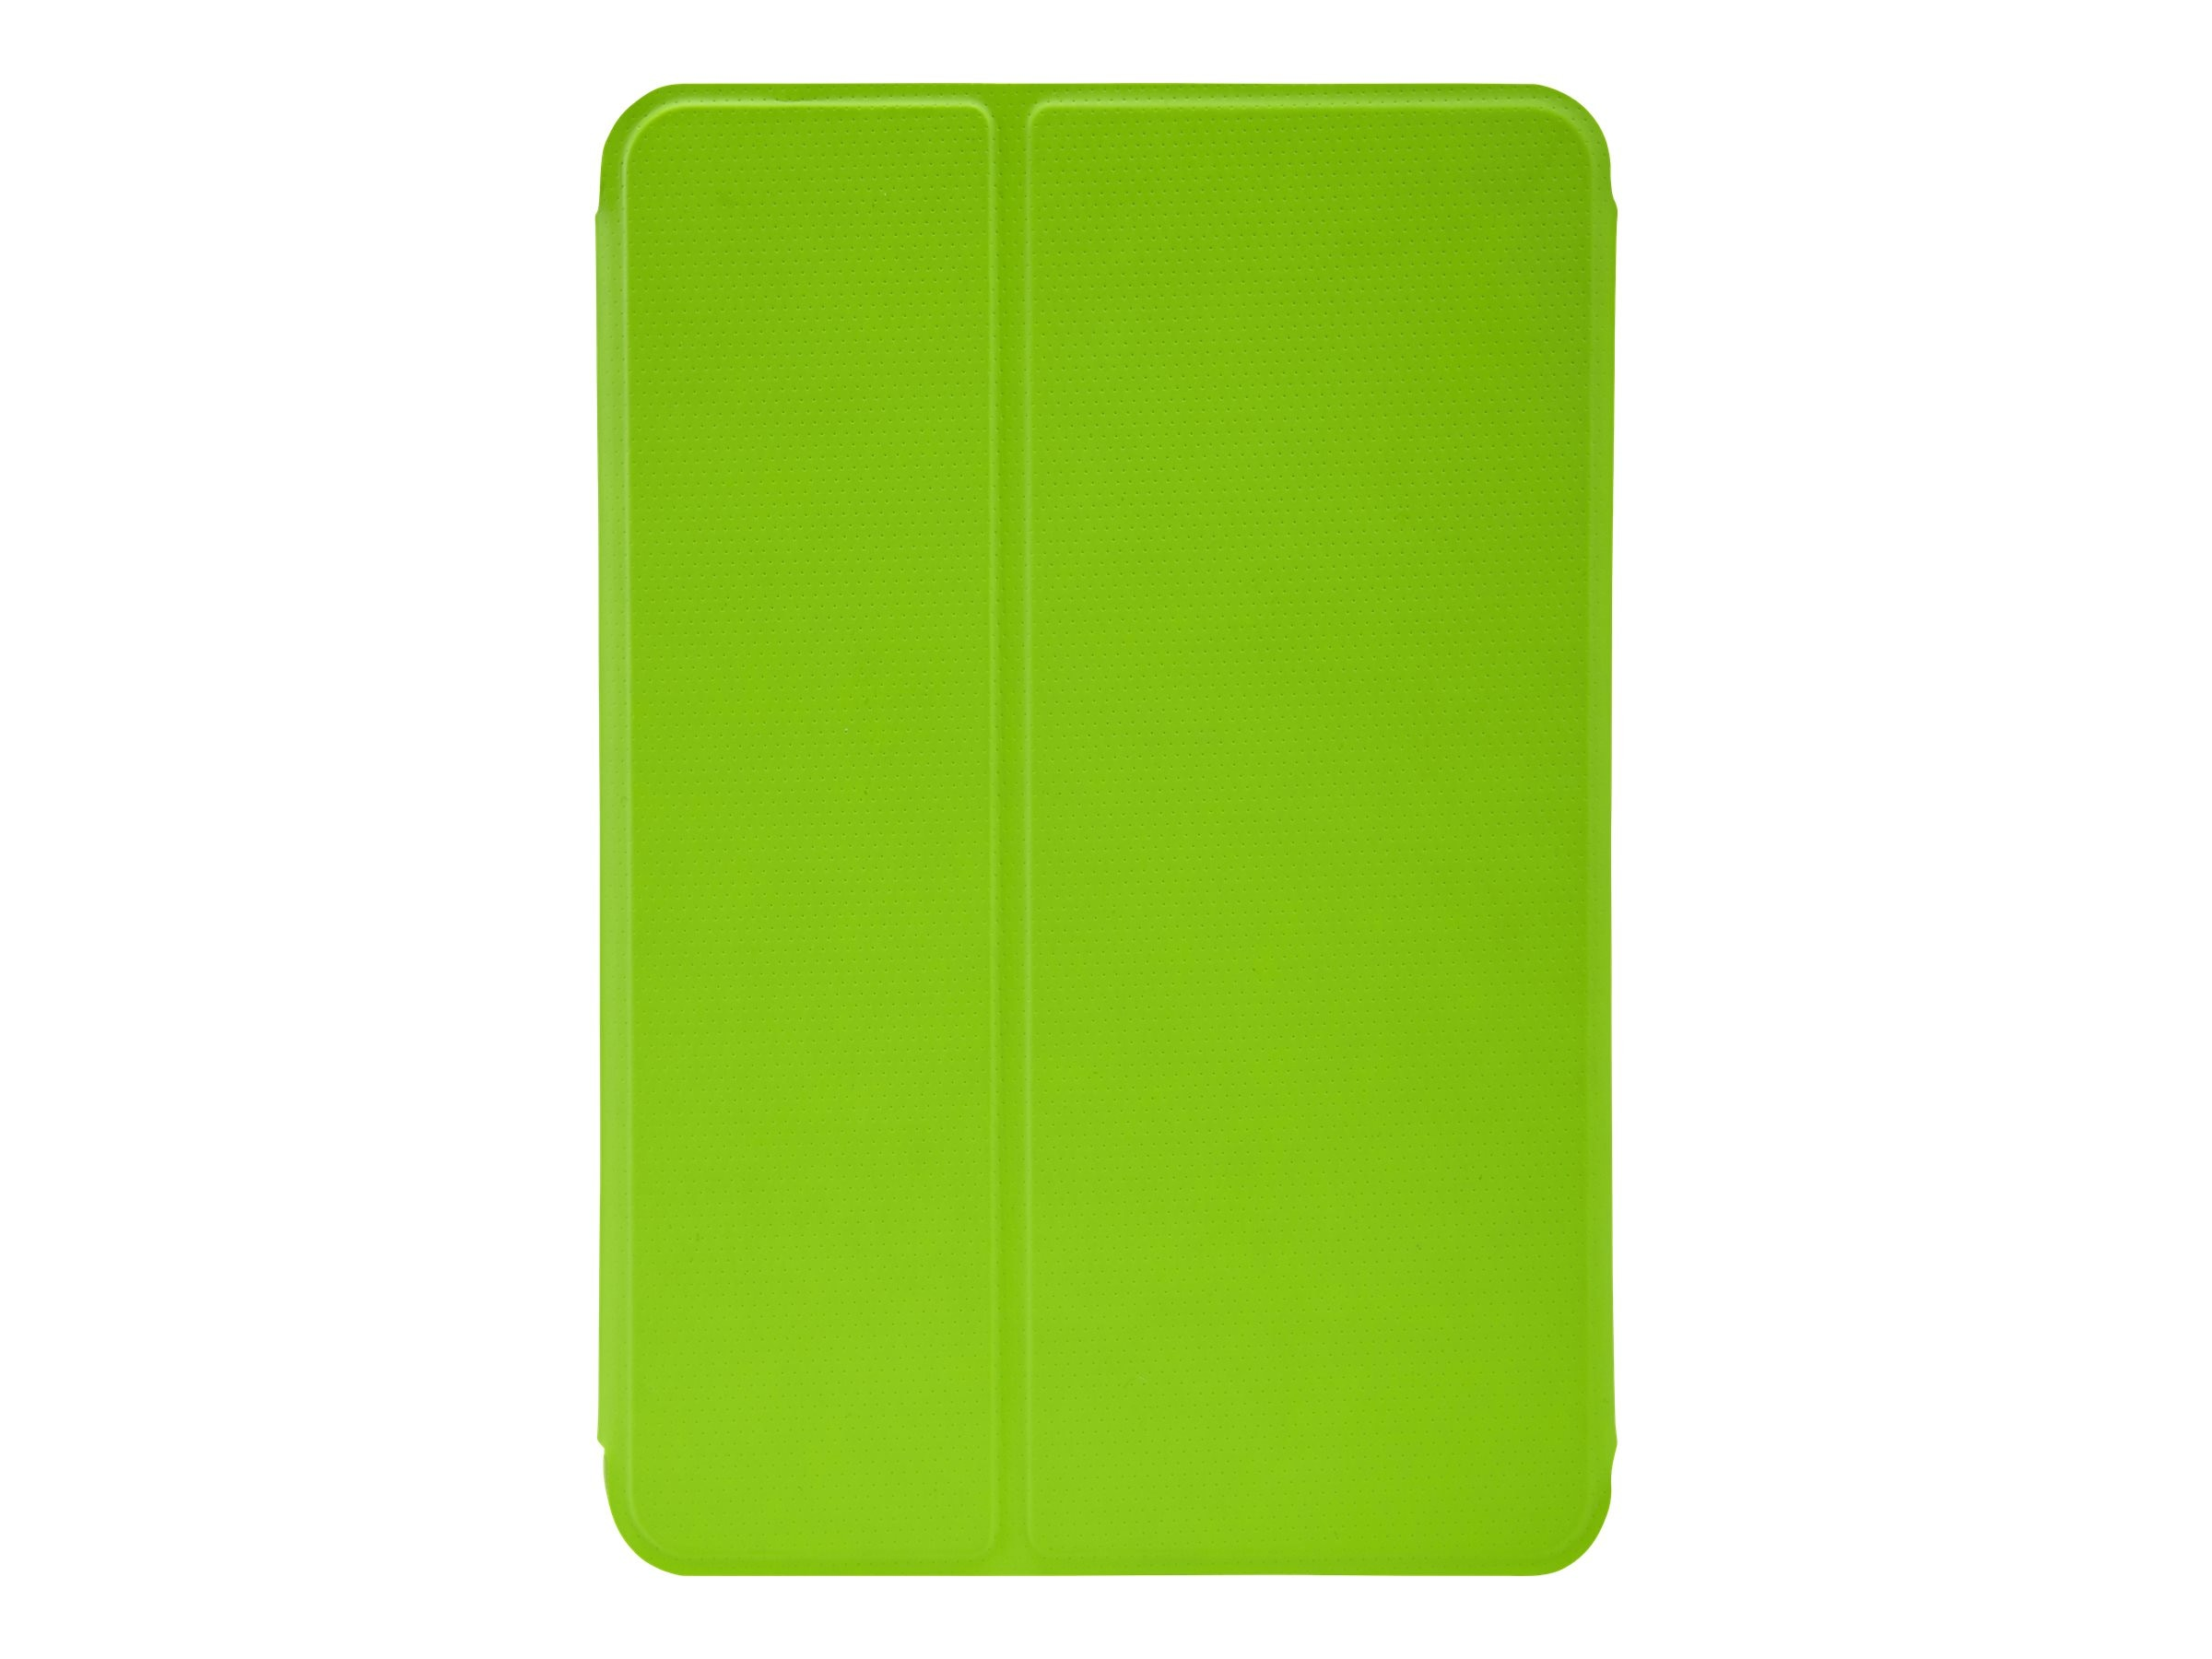 Case Logic SnapView 2.0 Case for iPad mini 1 2 3, Lime